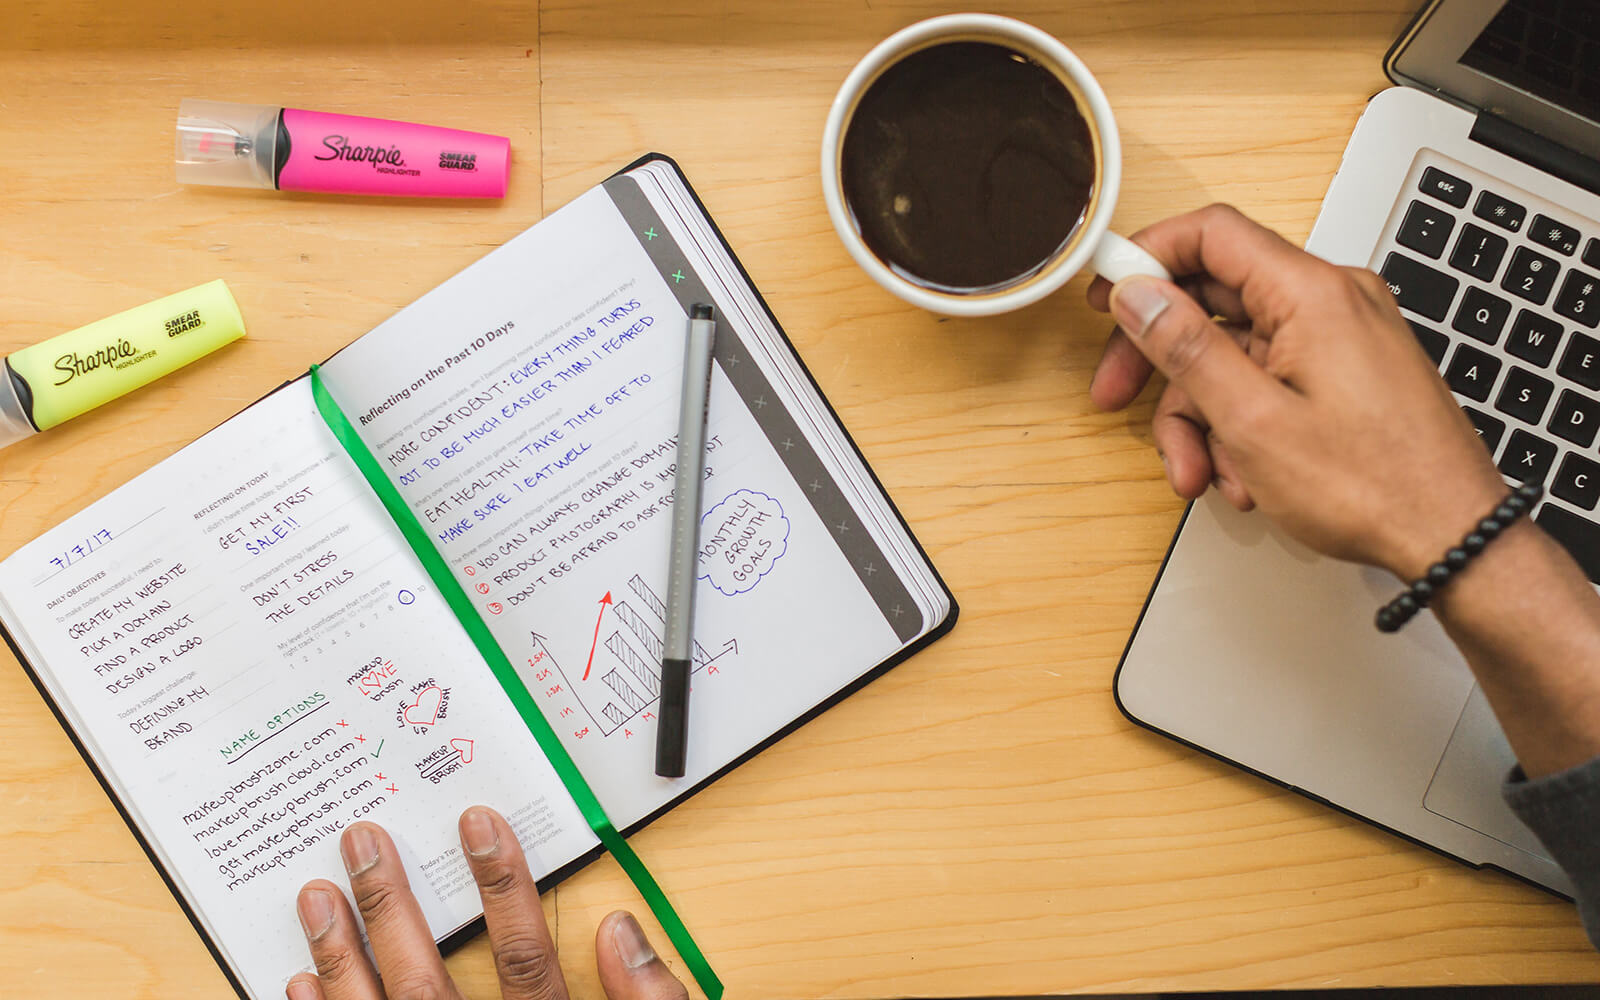 Open notebook and coffee